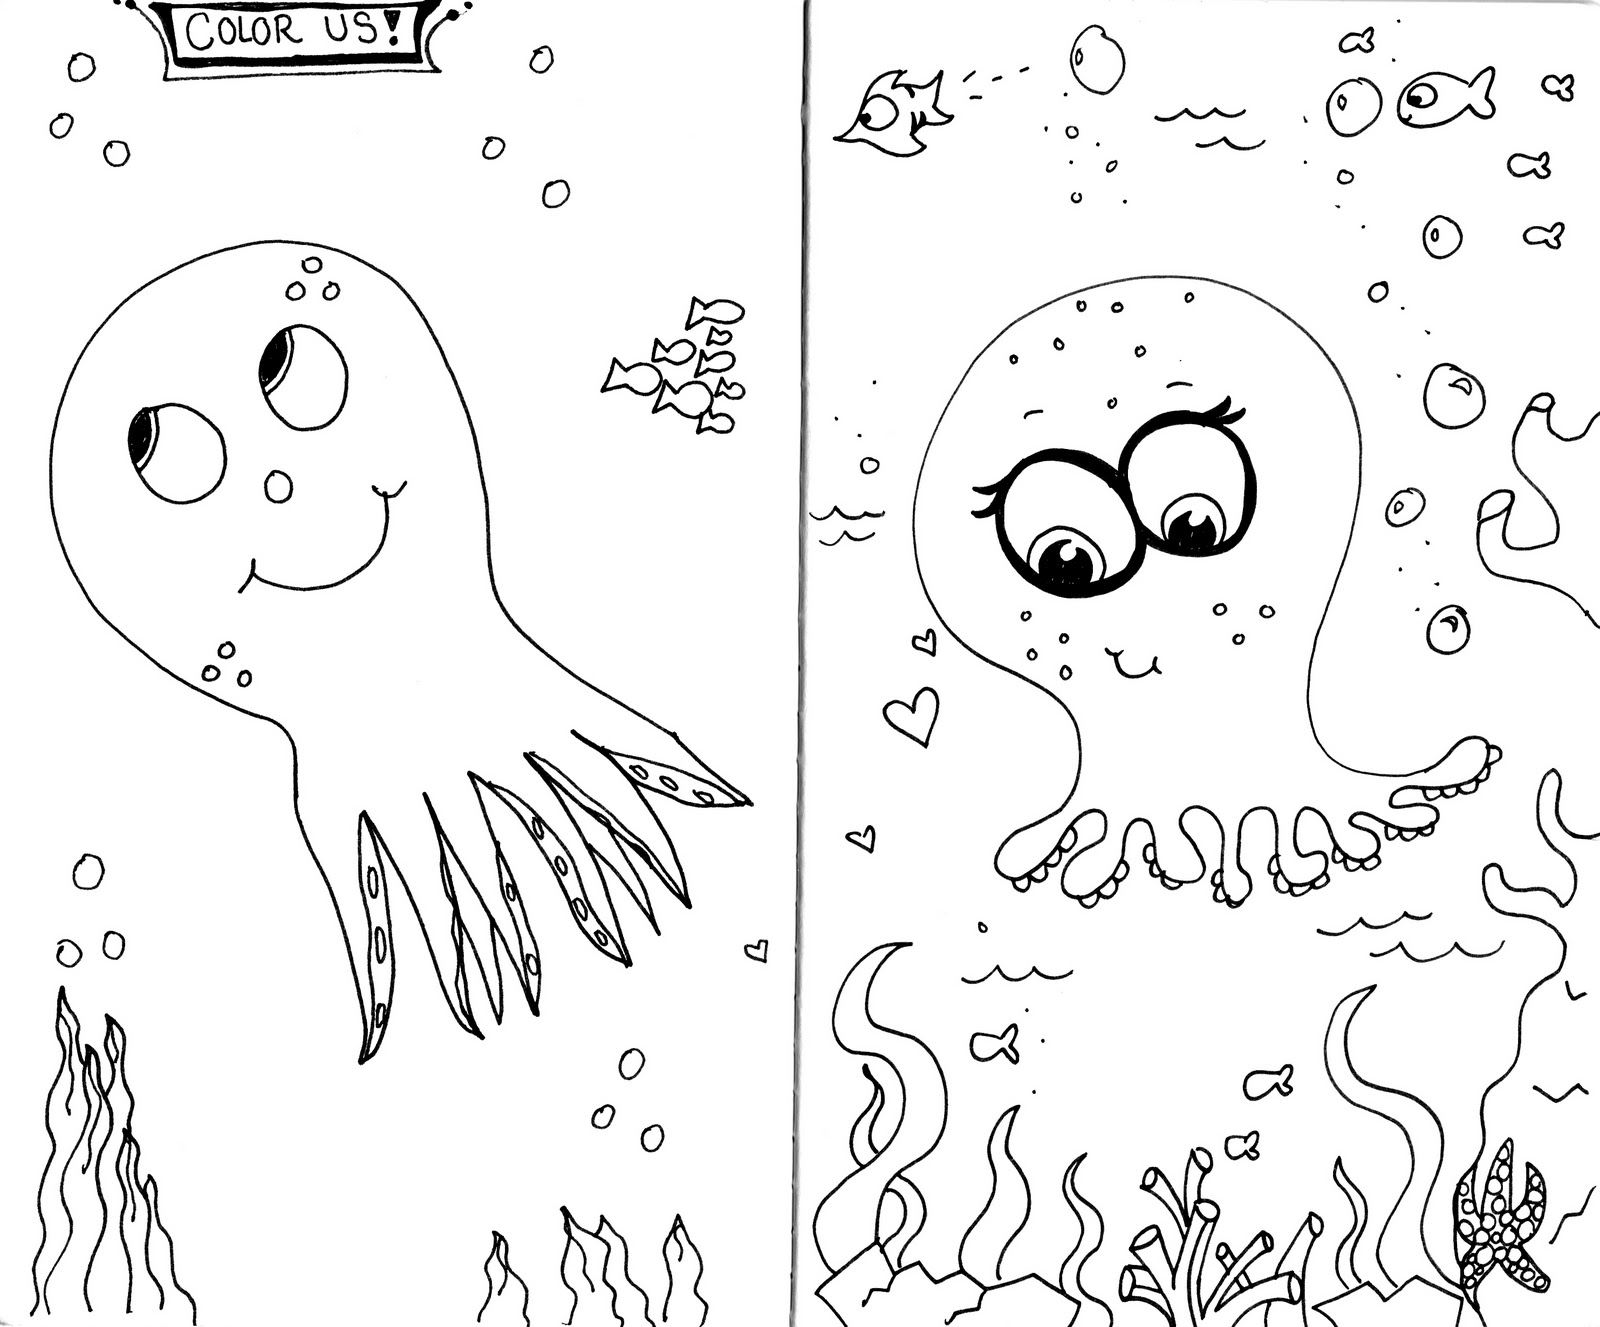 boyfriend girlfriend coloring pages - photo#36